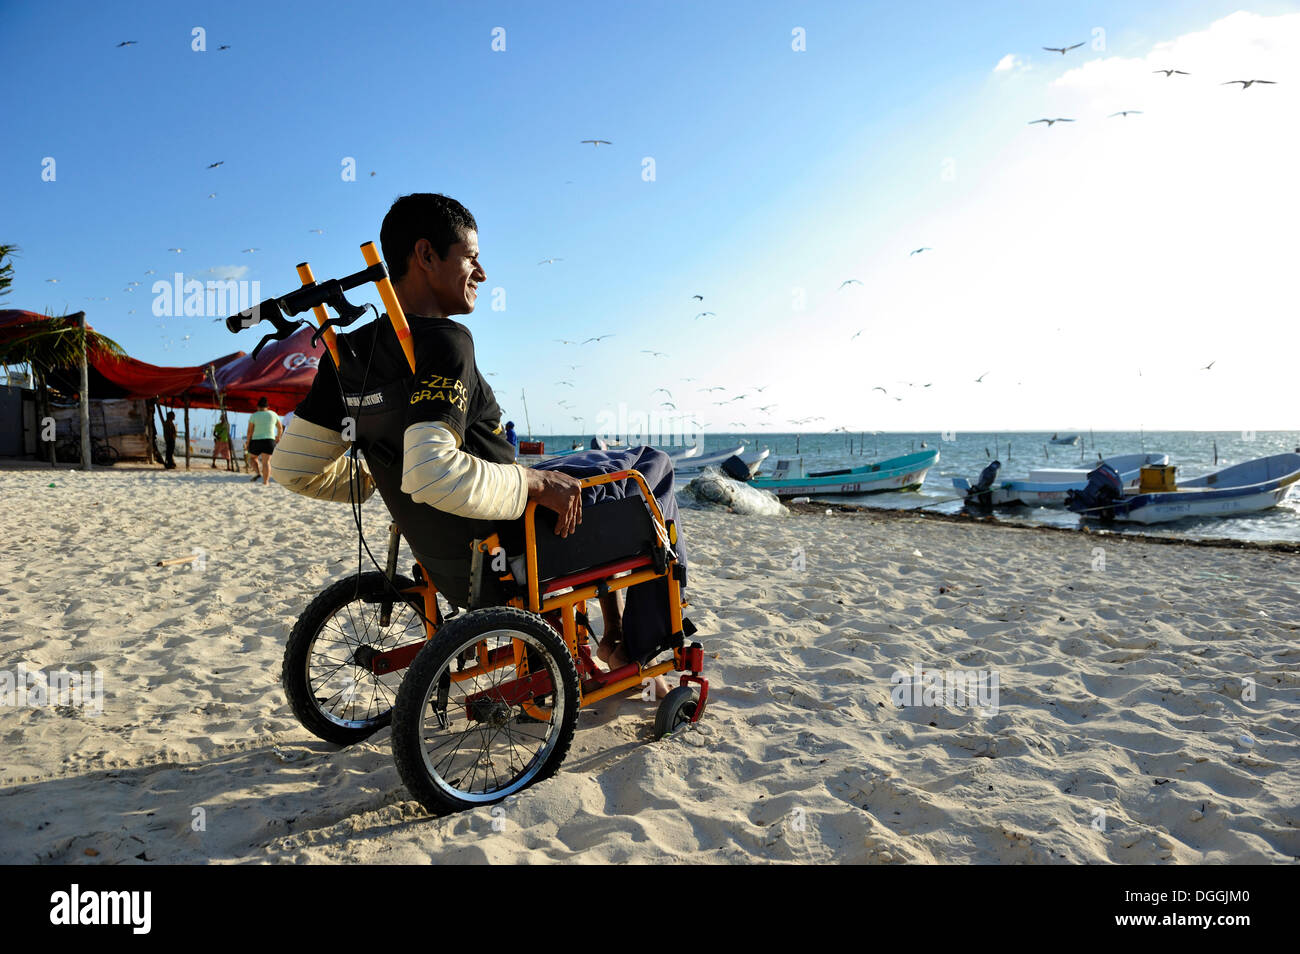 Lobster fisherman suffering from the bends after a diving accident sitting in his wheelchair at the beach, Cancun - Stock Image